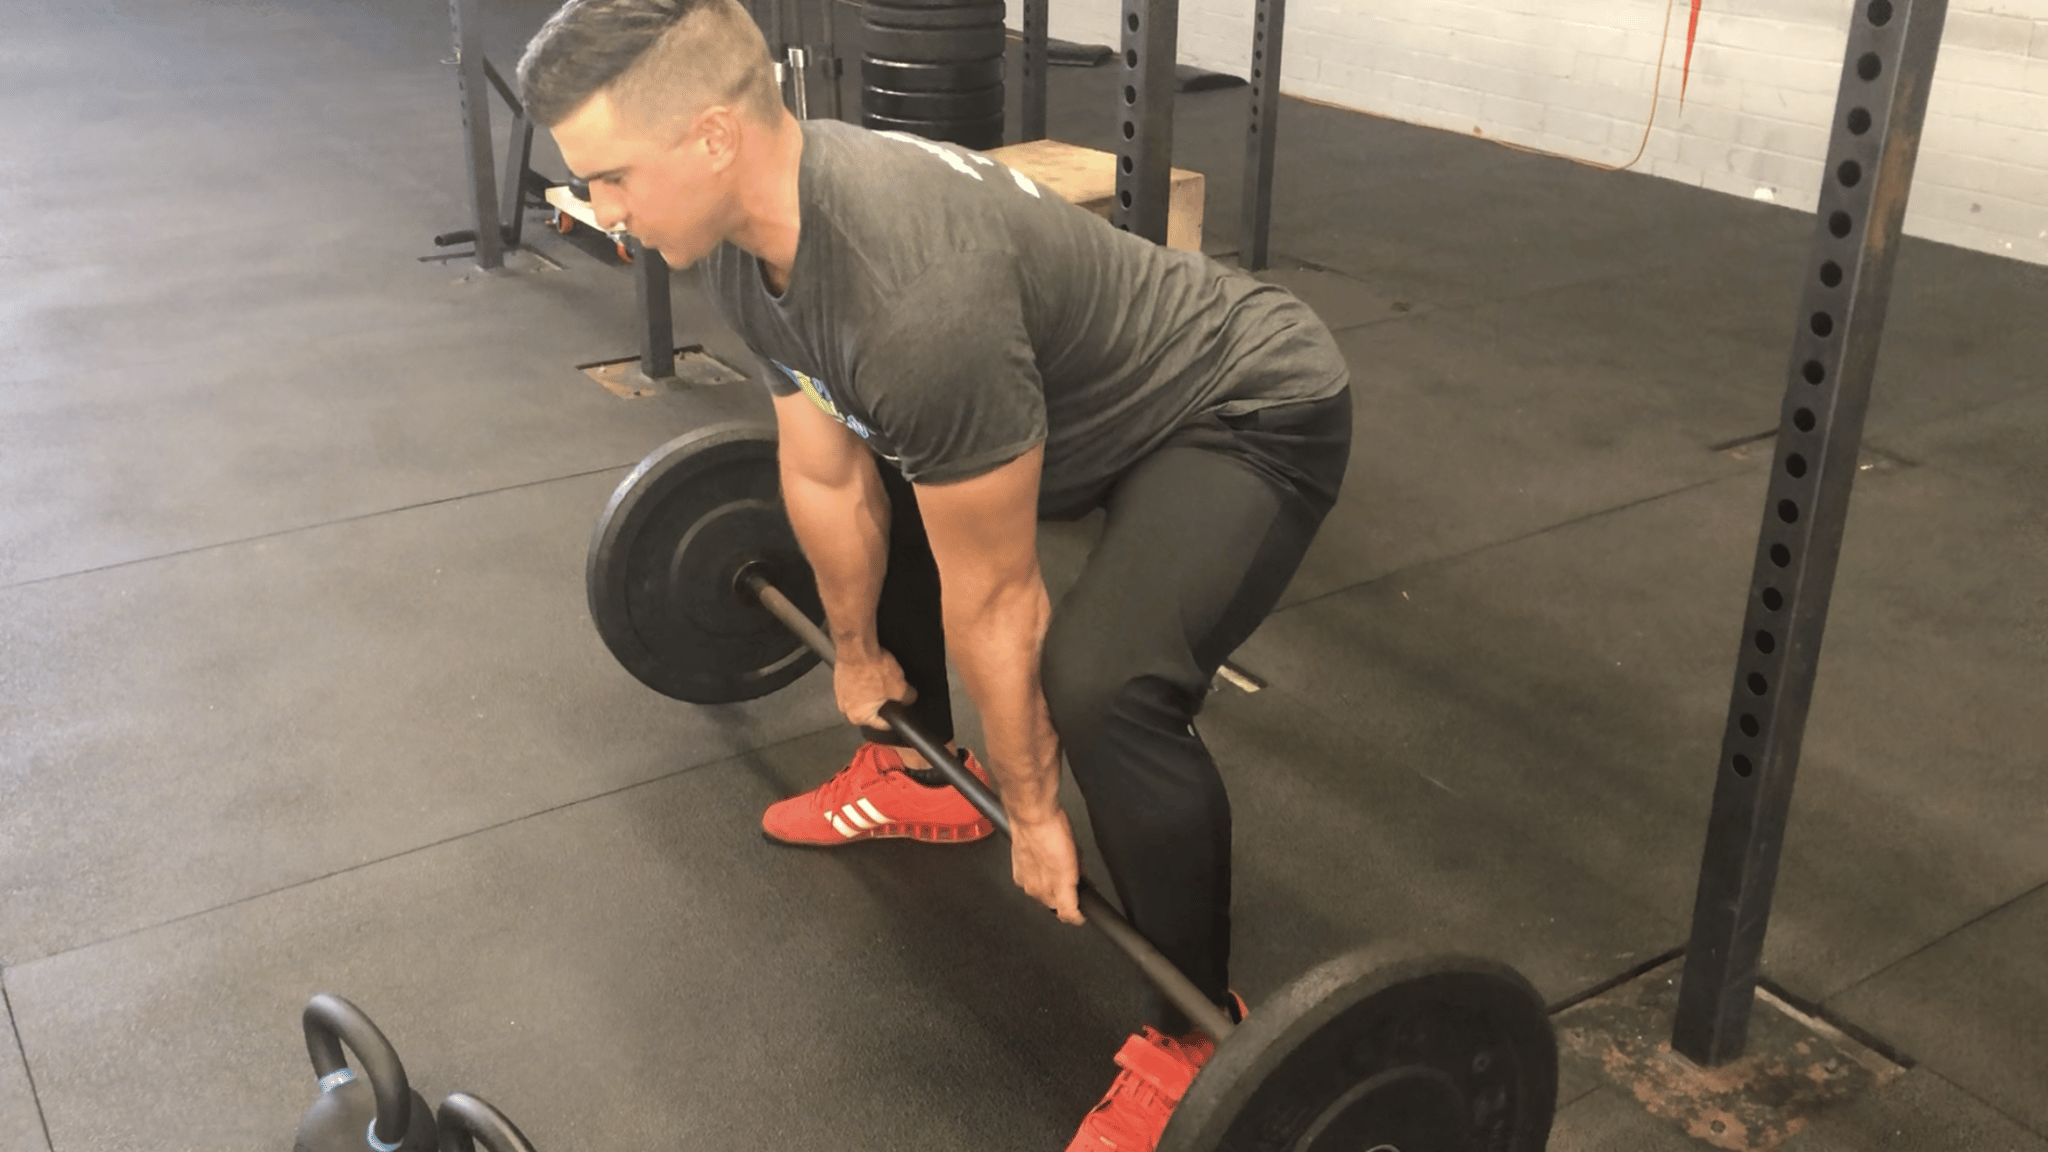 directory of fitness justin james doing squats with a barbell